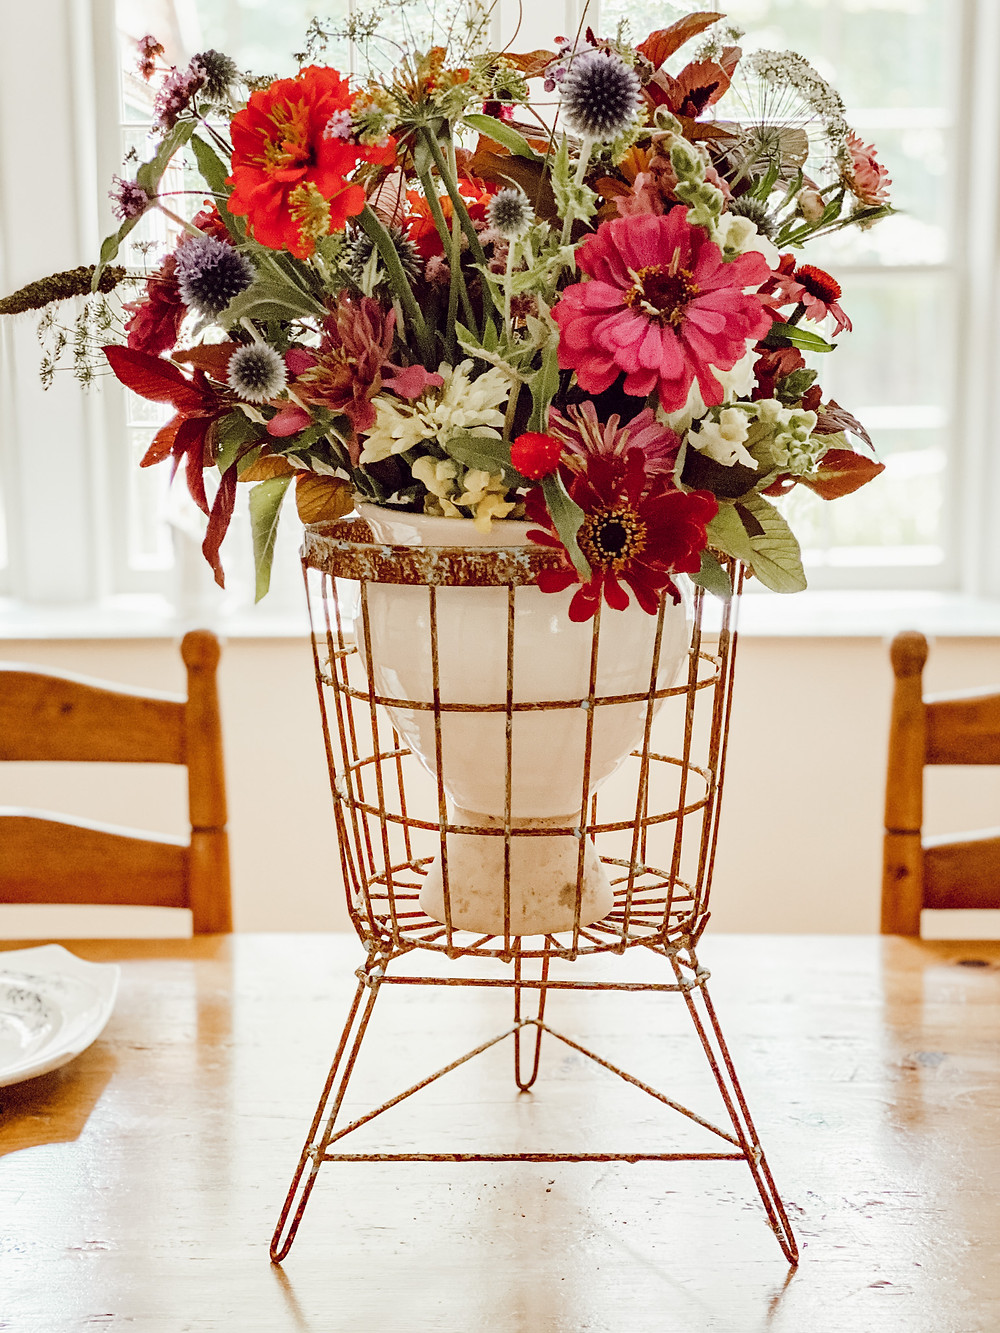 Vintage Styled Flower Centerpiece